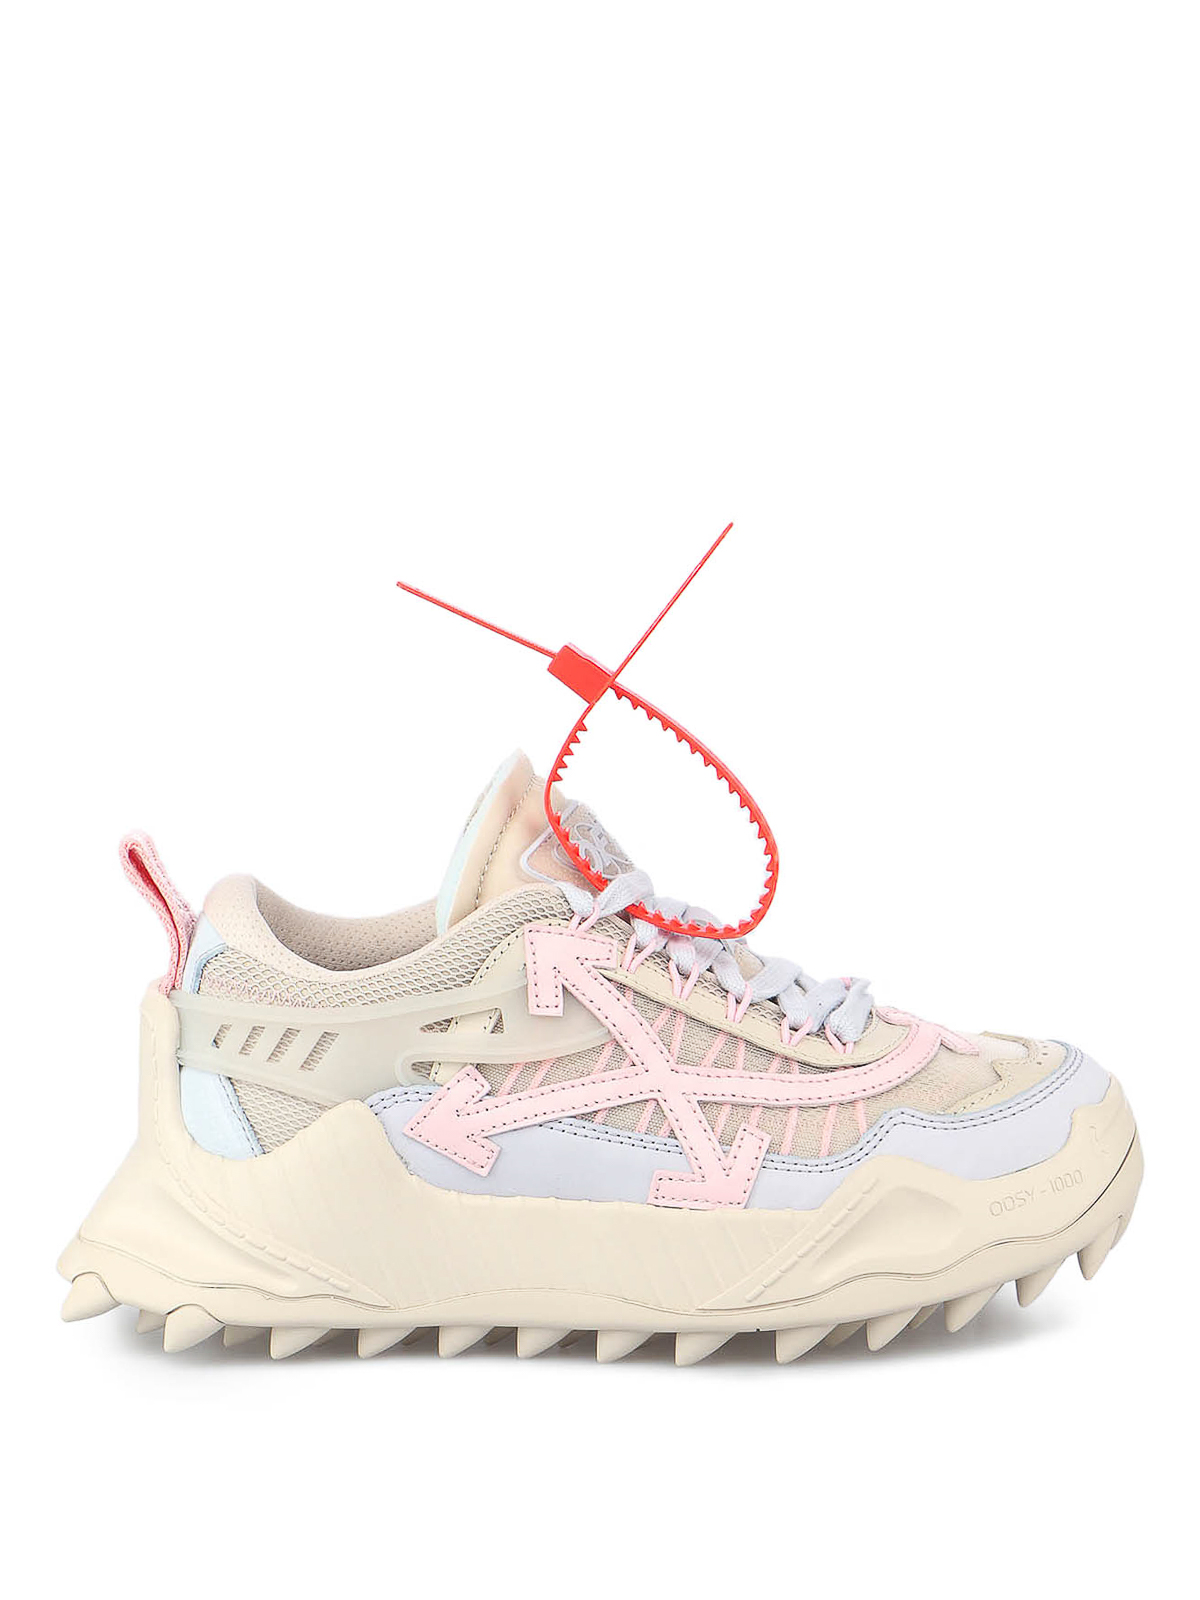 Off-White Leathers ODSY-1000SNEAKERS